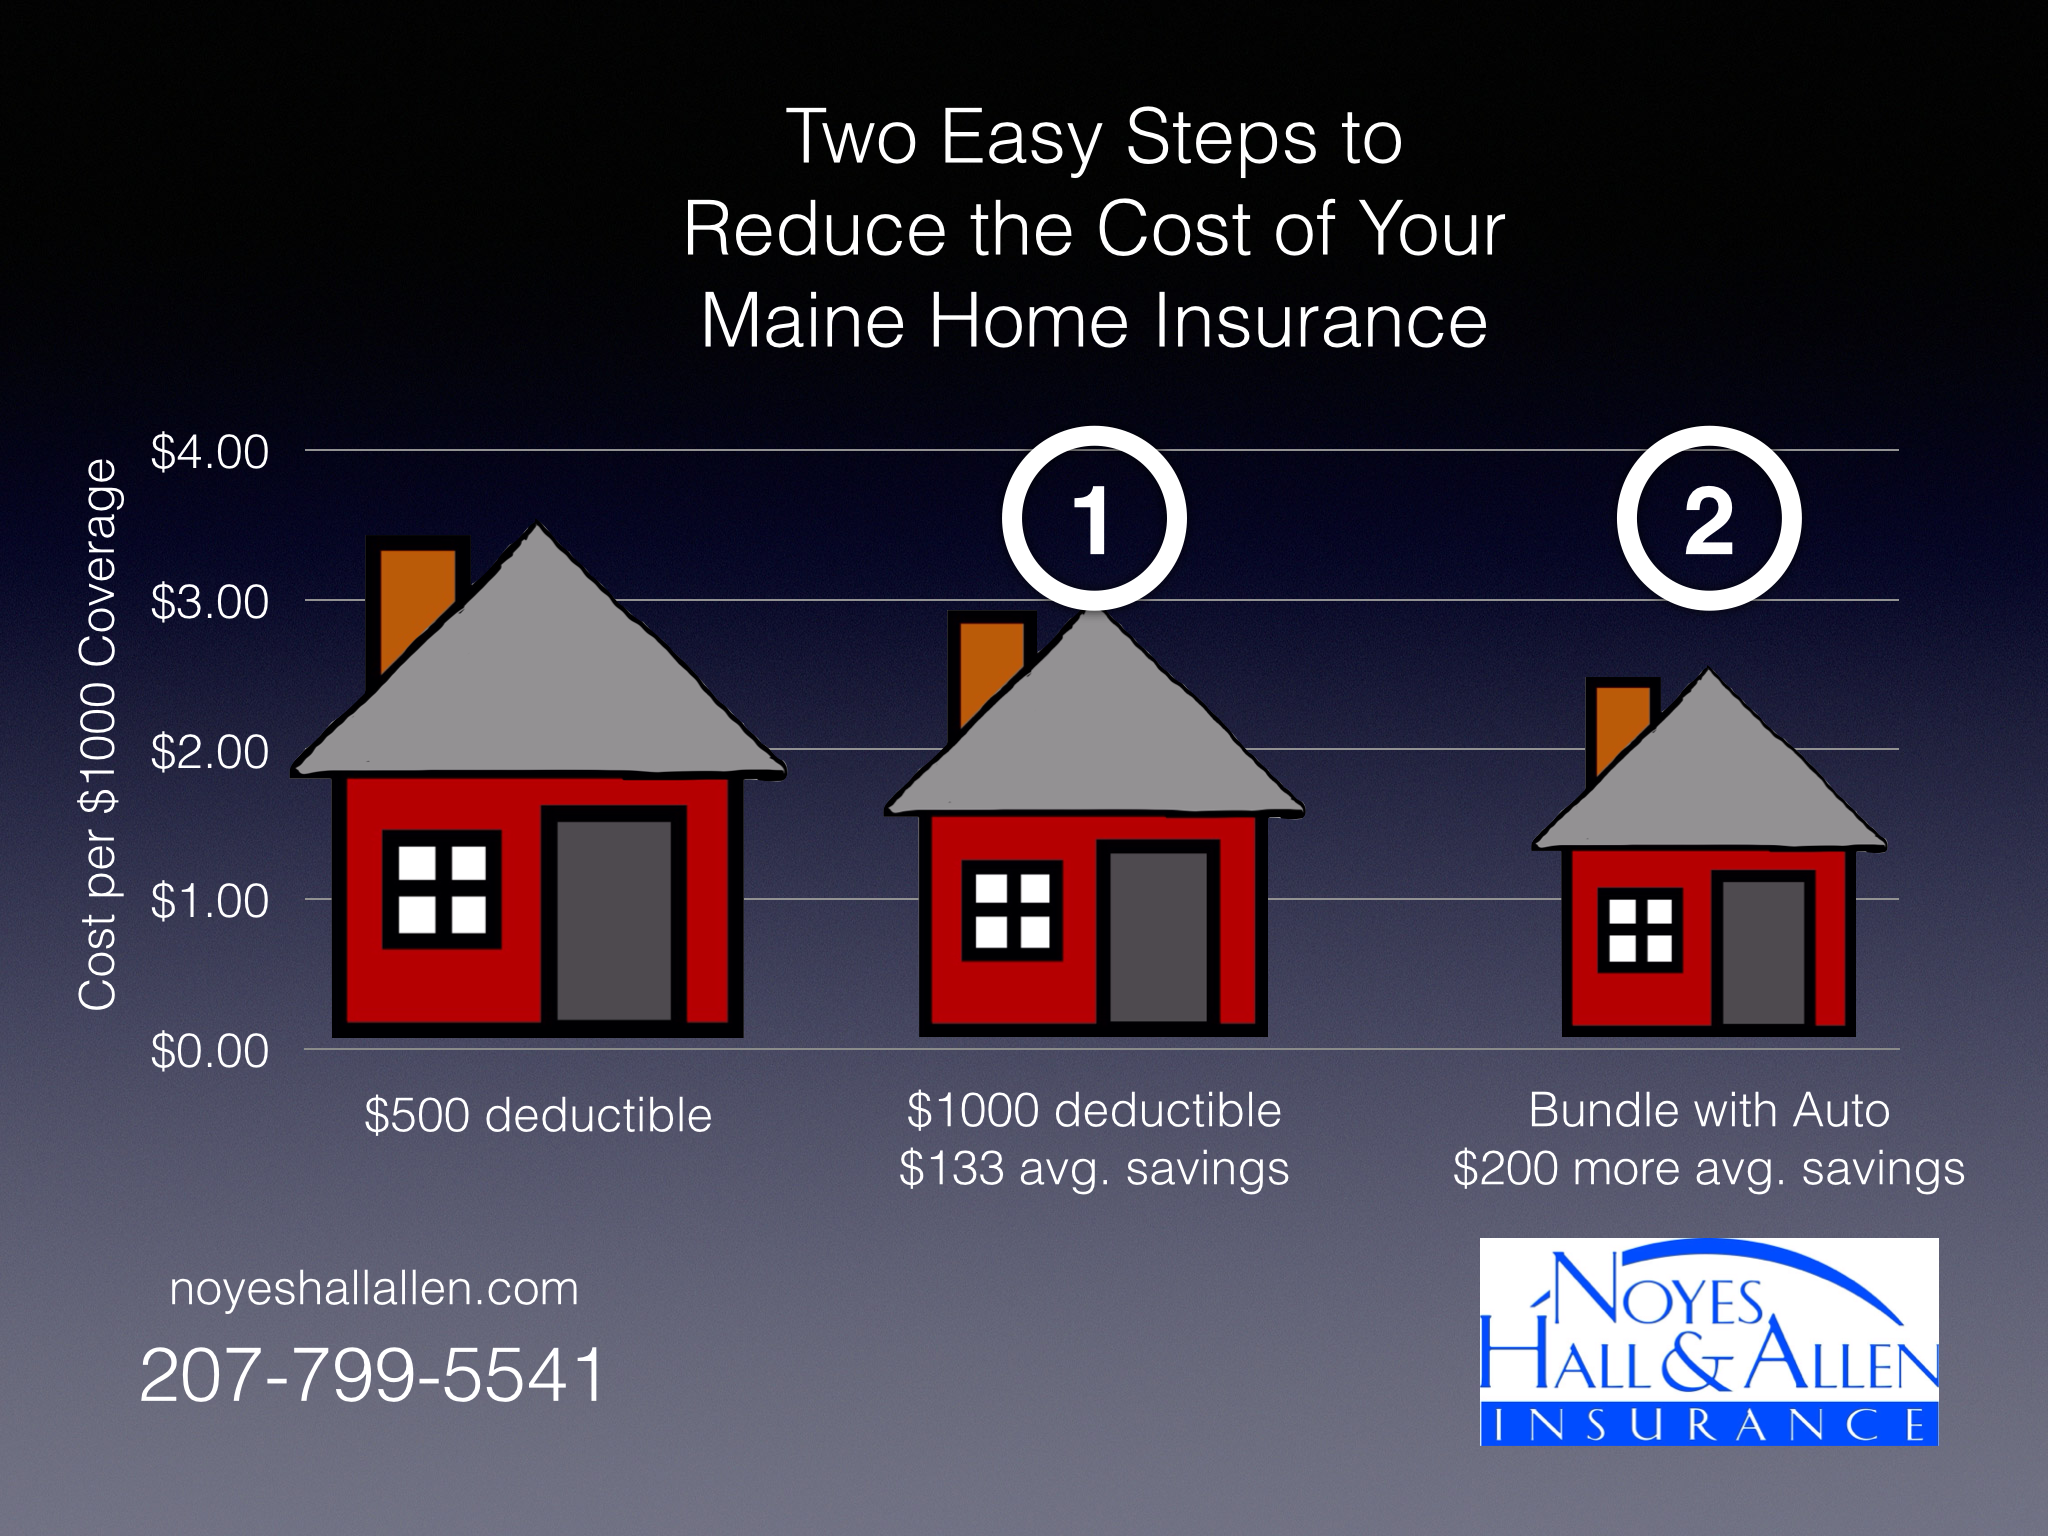 Two Quick & Easy Steps to Reduce Maine Home Insurance Costs